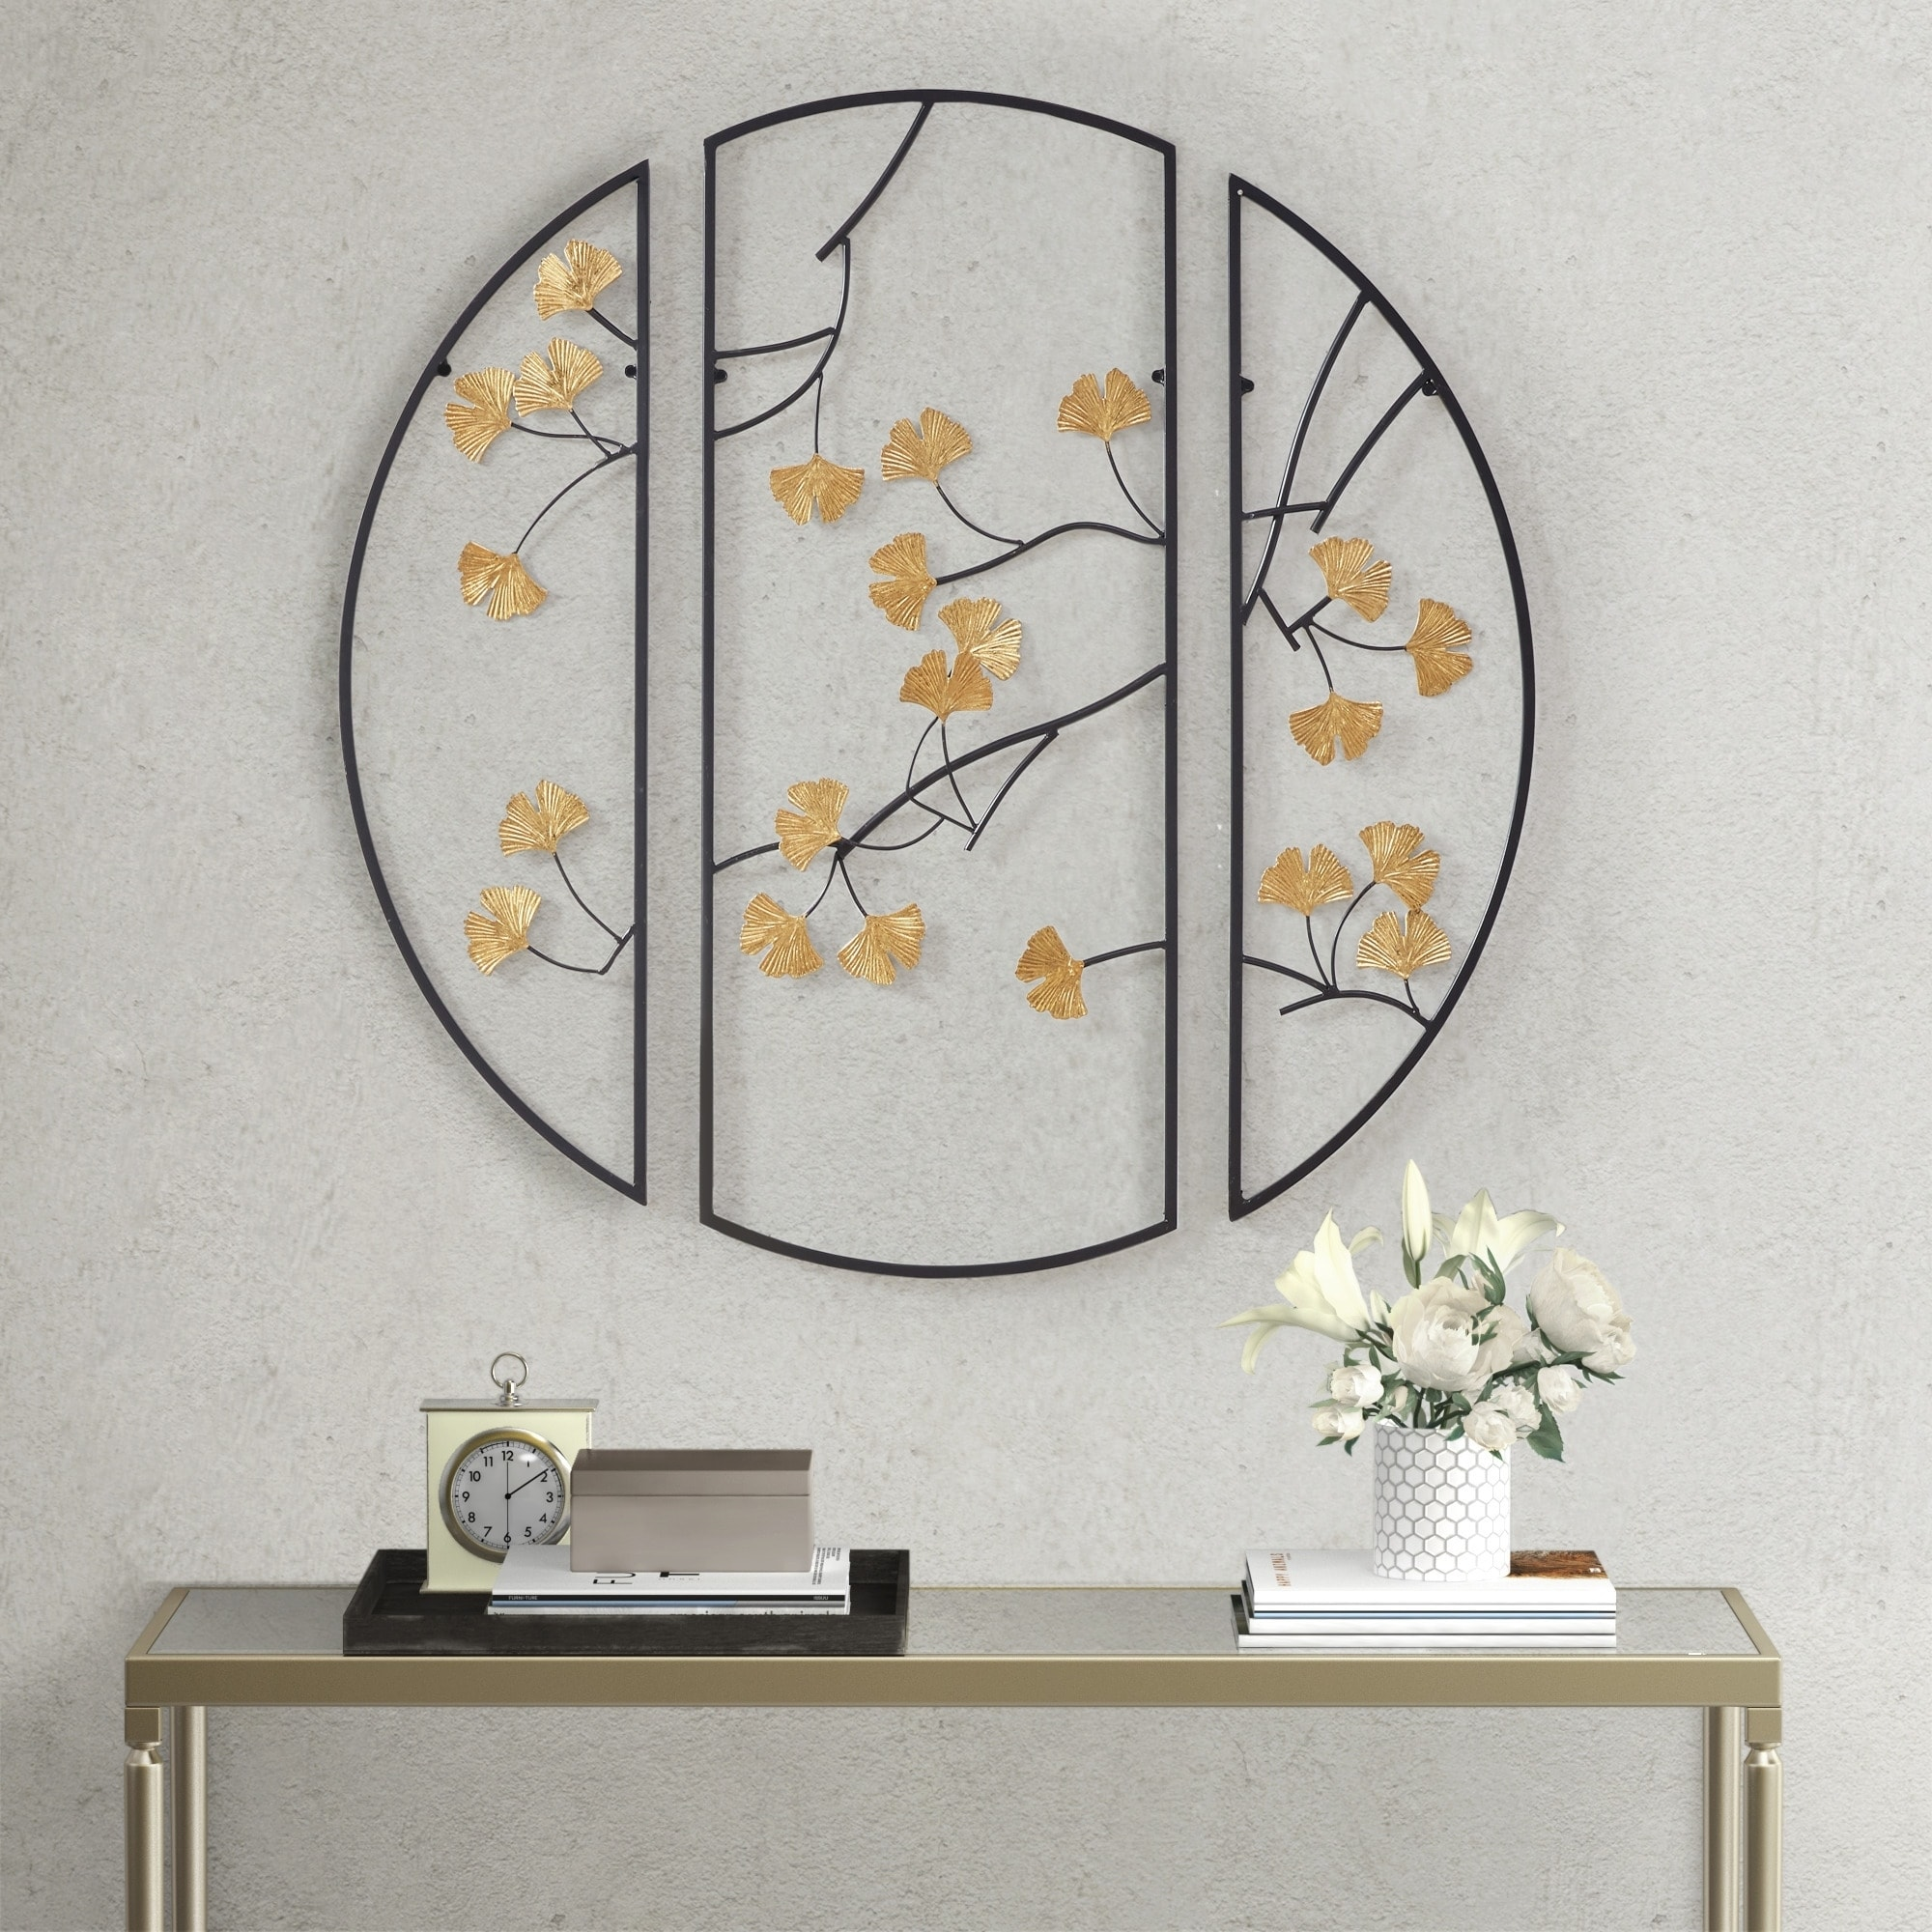 Madison Park Golden Gingko Leaves Black Gold Metal Wall Decor 3pc Set On Sale Overstock 31094594